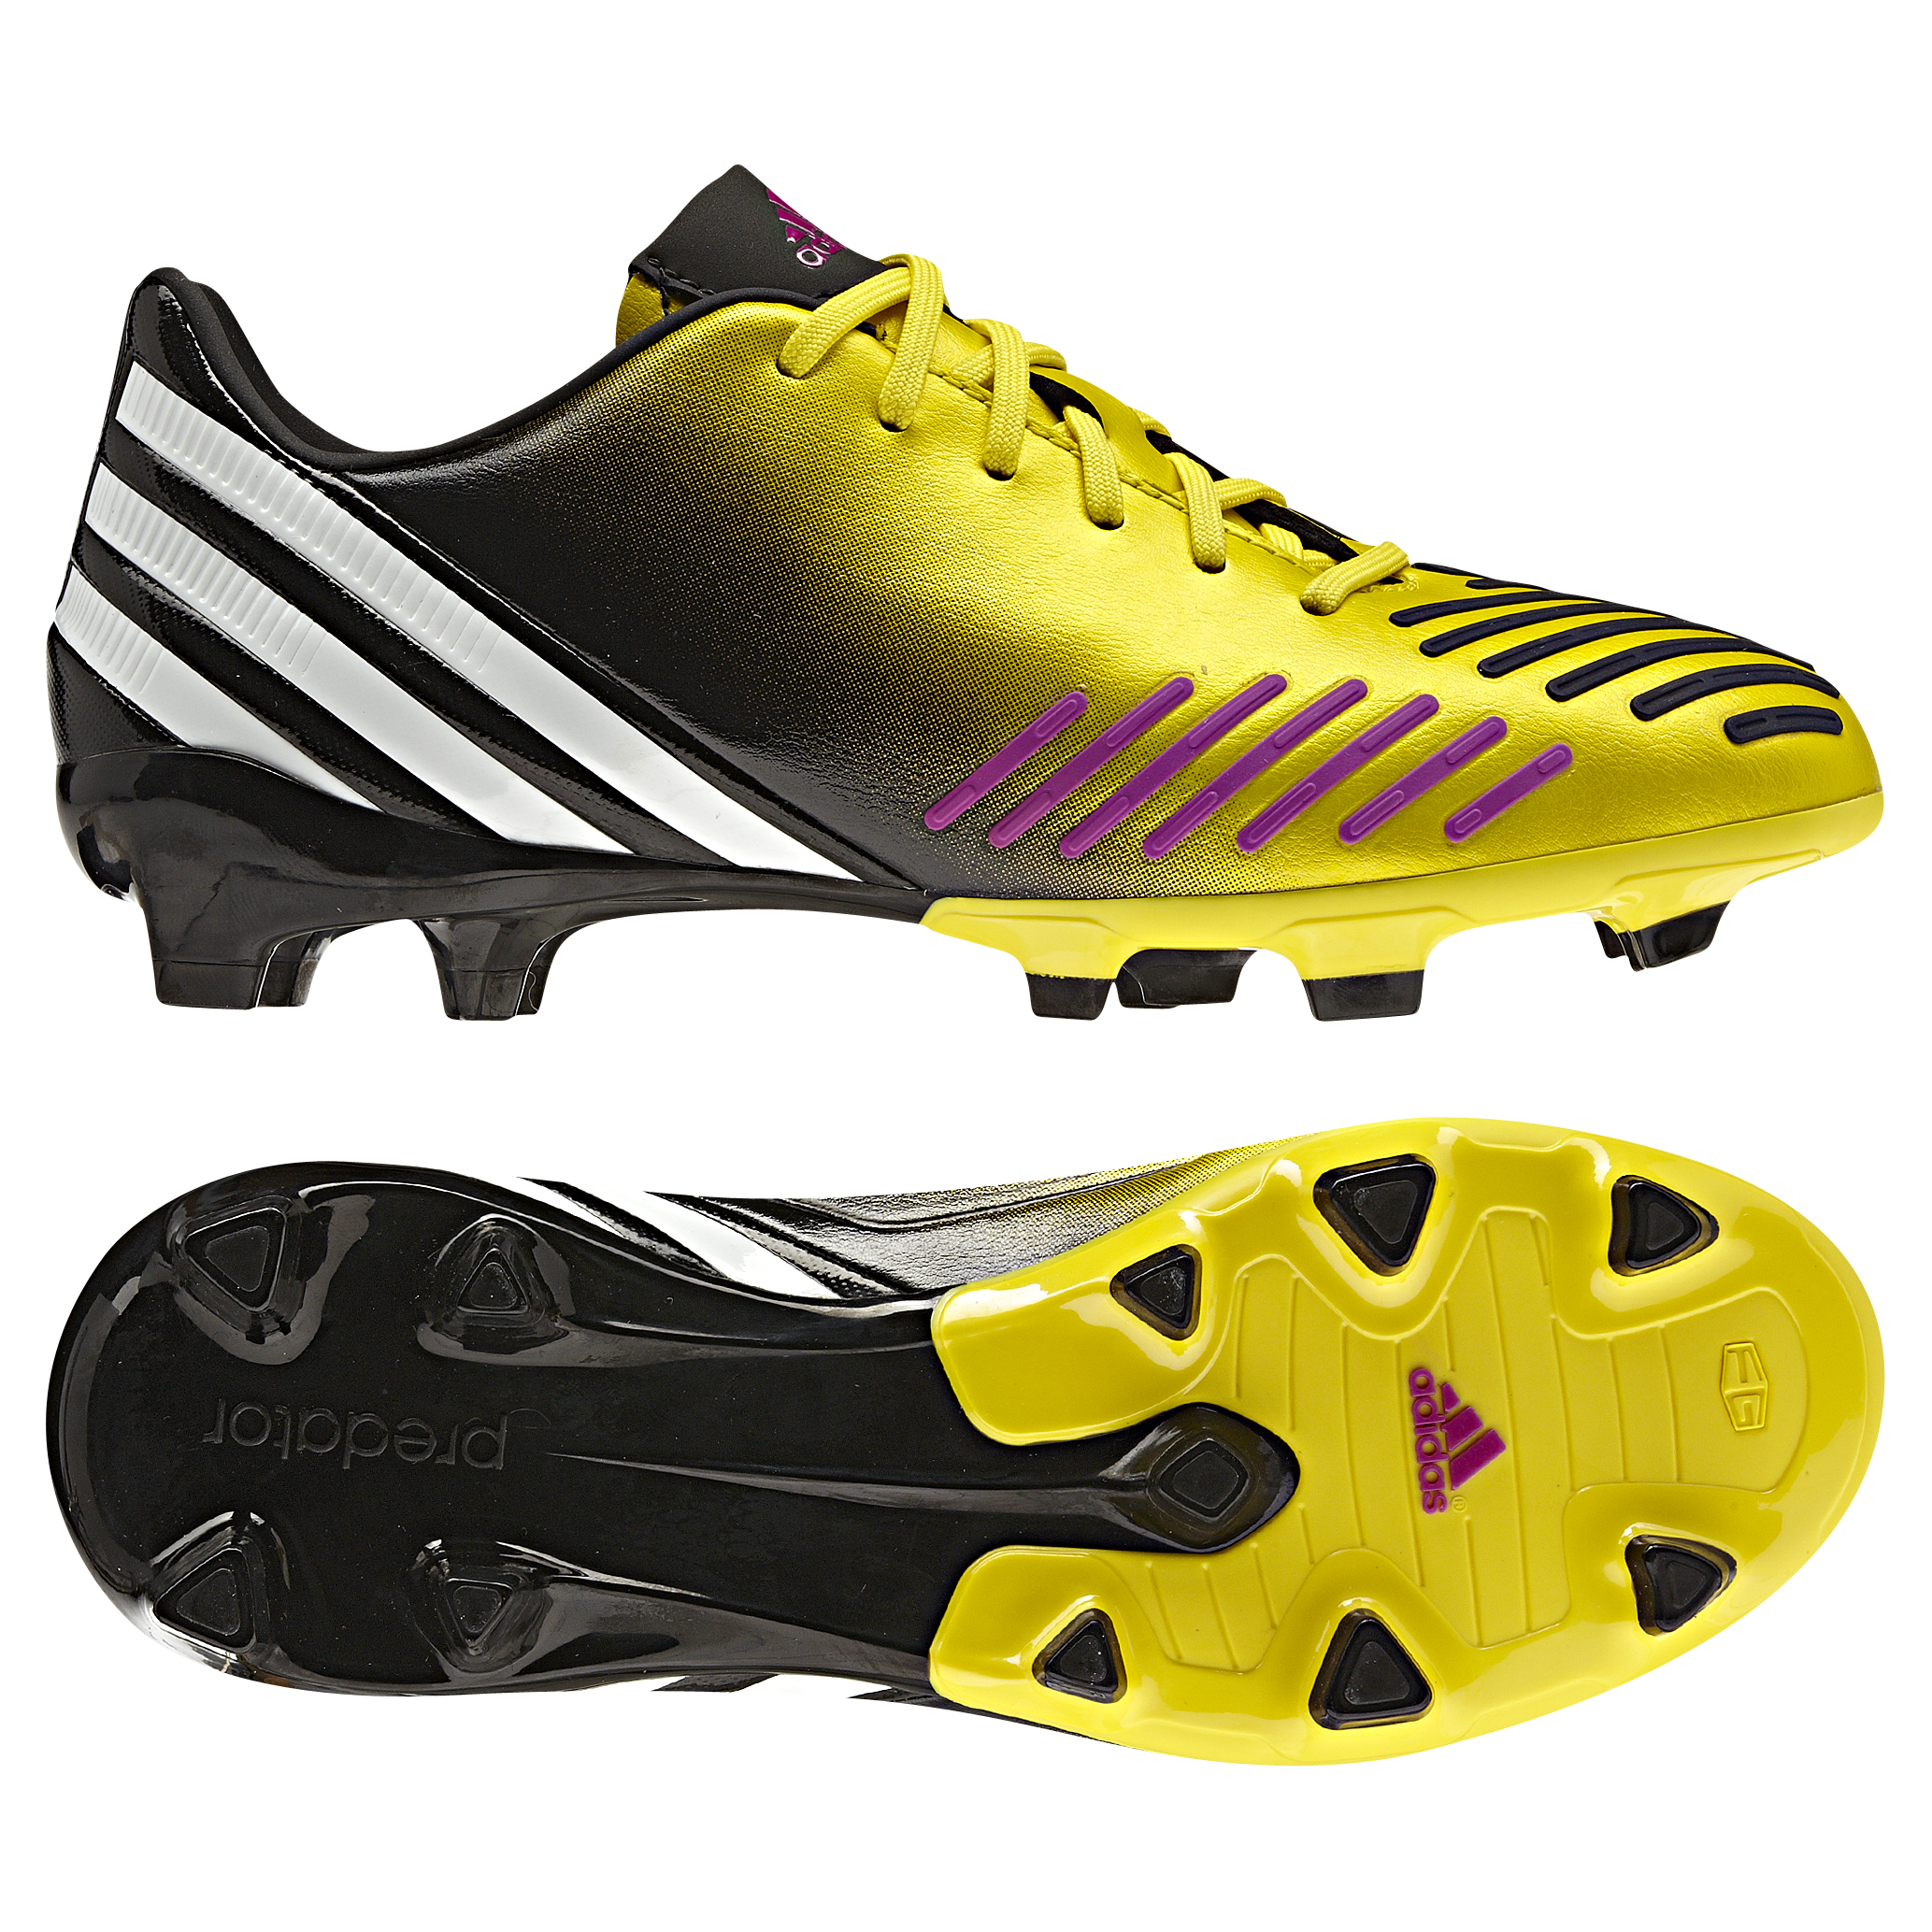 Adidas Predator Absolion LZ TRX Firm Ground Football Boots - Vivid Yellow/White/Vivid Pink - Kids